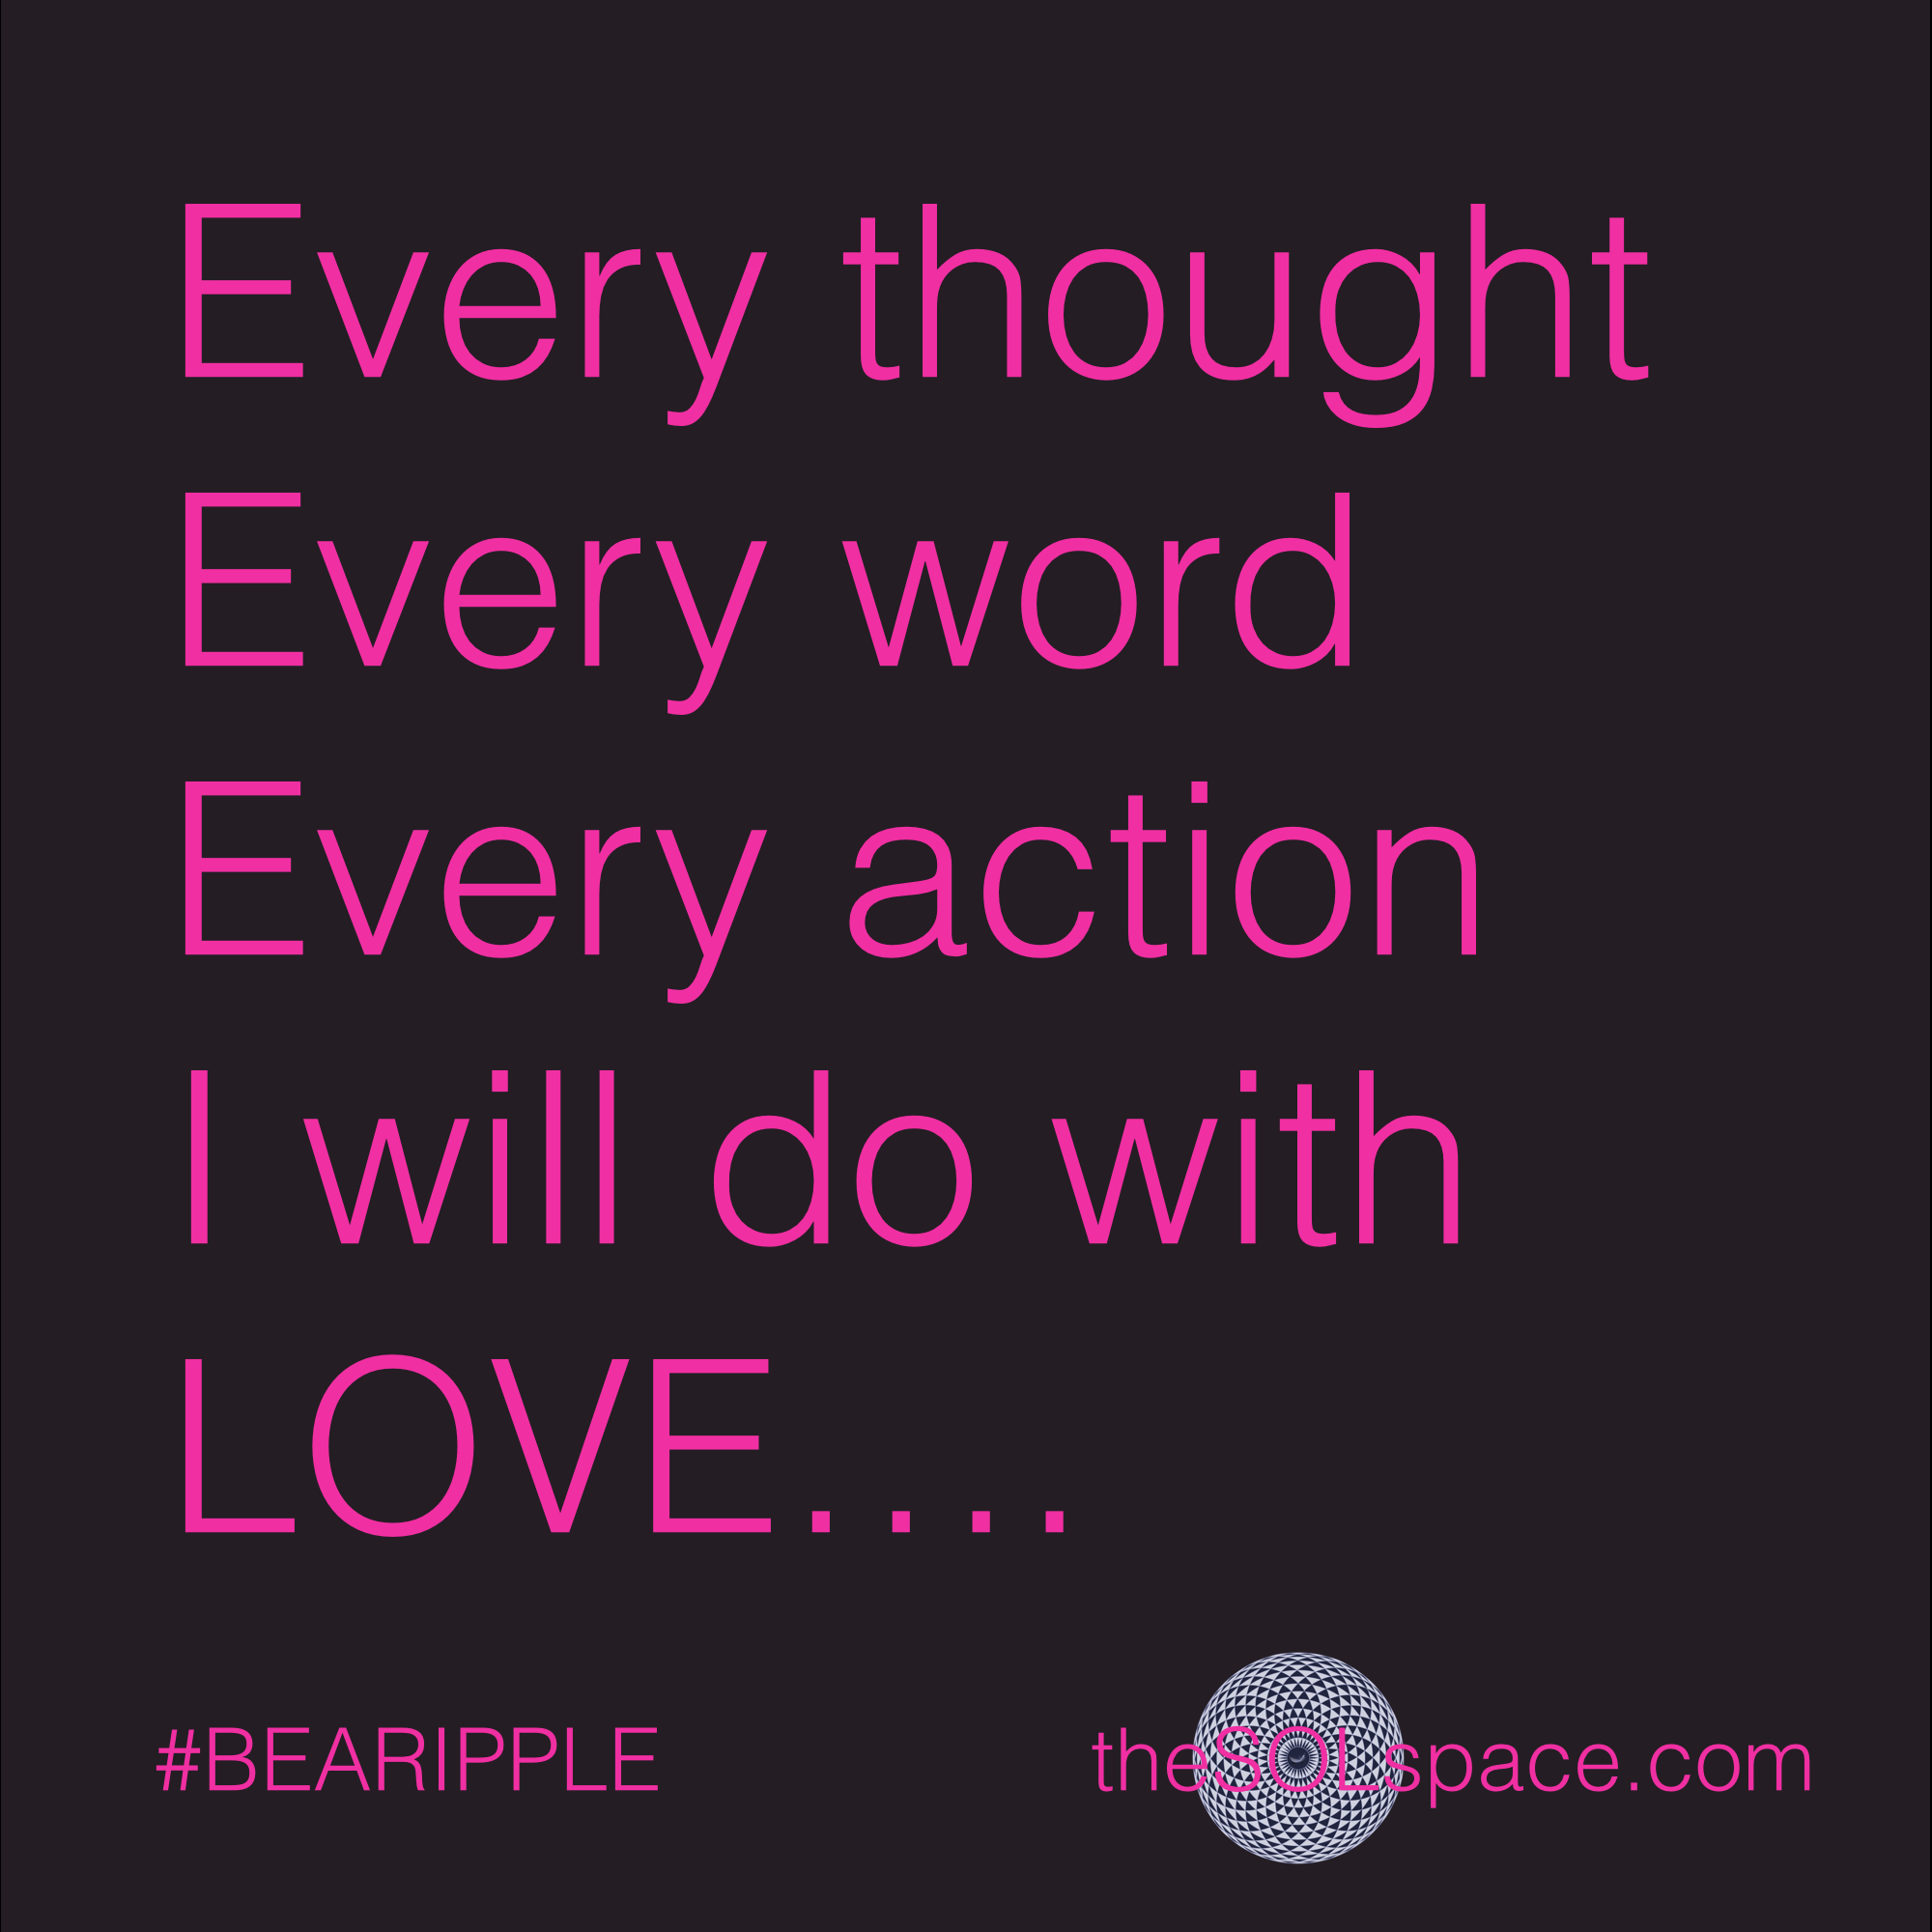 #BeARipple.. Every thought, every word, every action, I will do with LOVE @theSOLspace